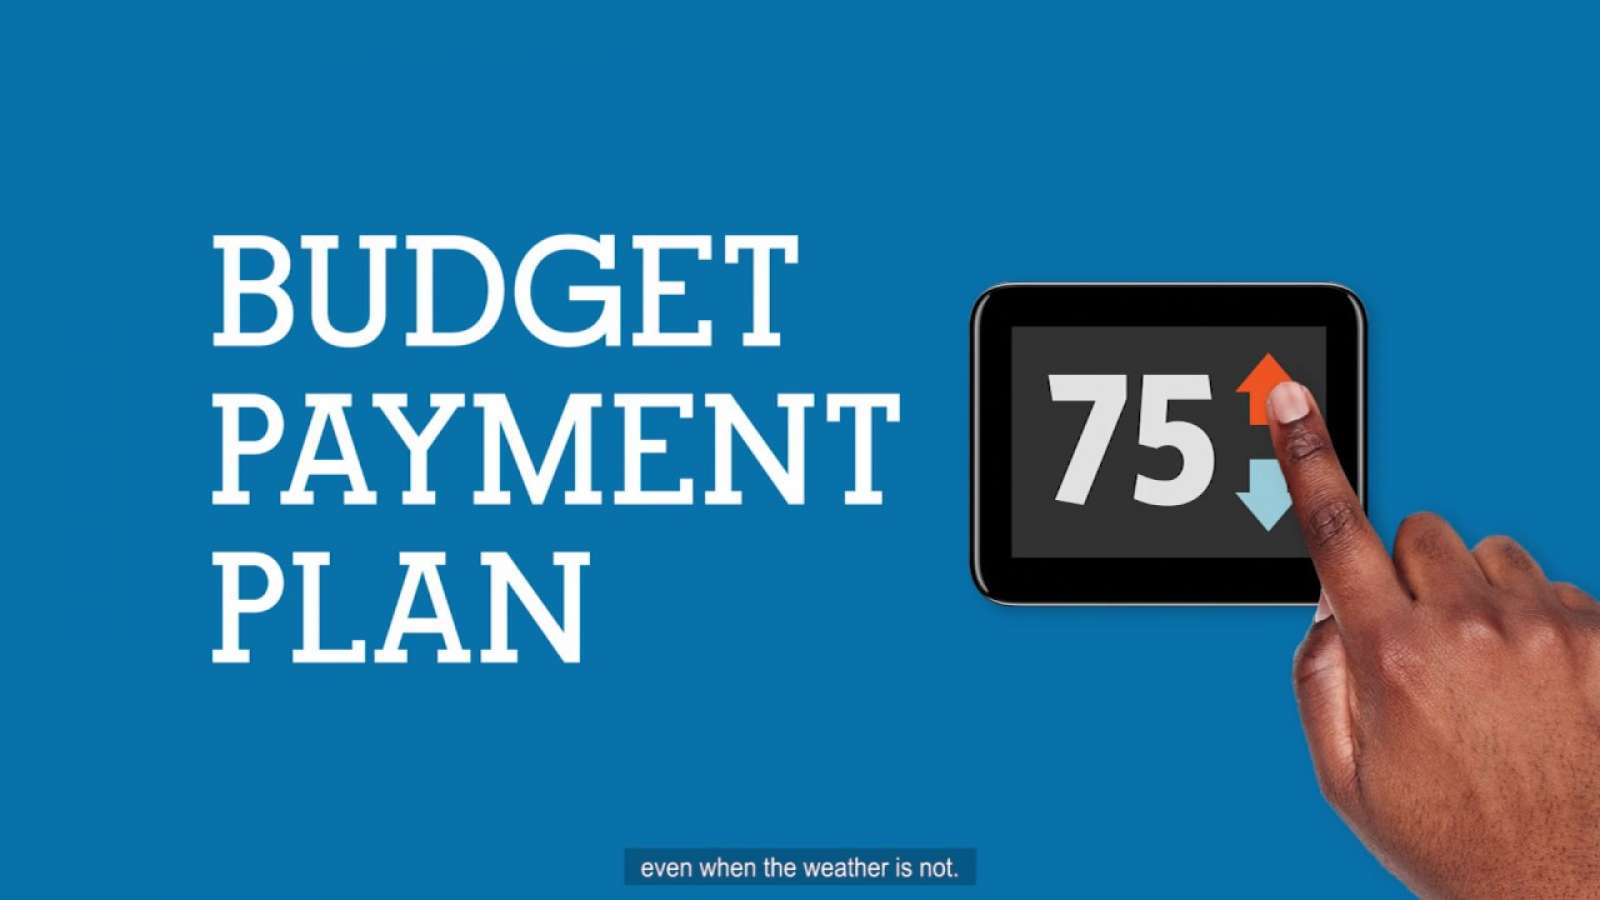 Preview of residential budget payment plan video